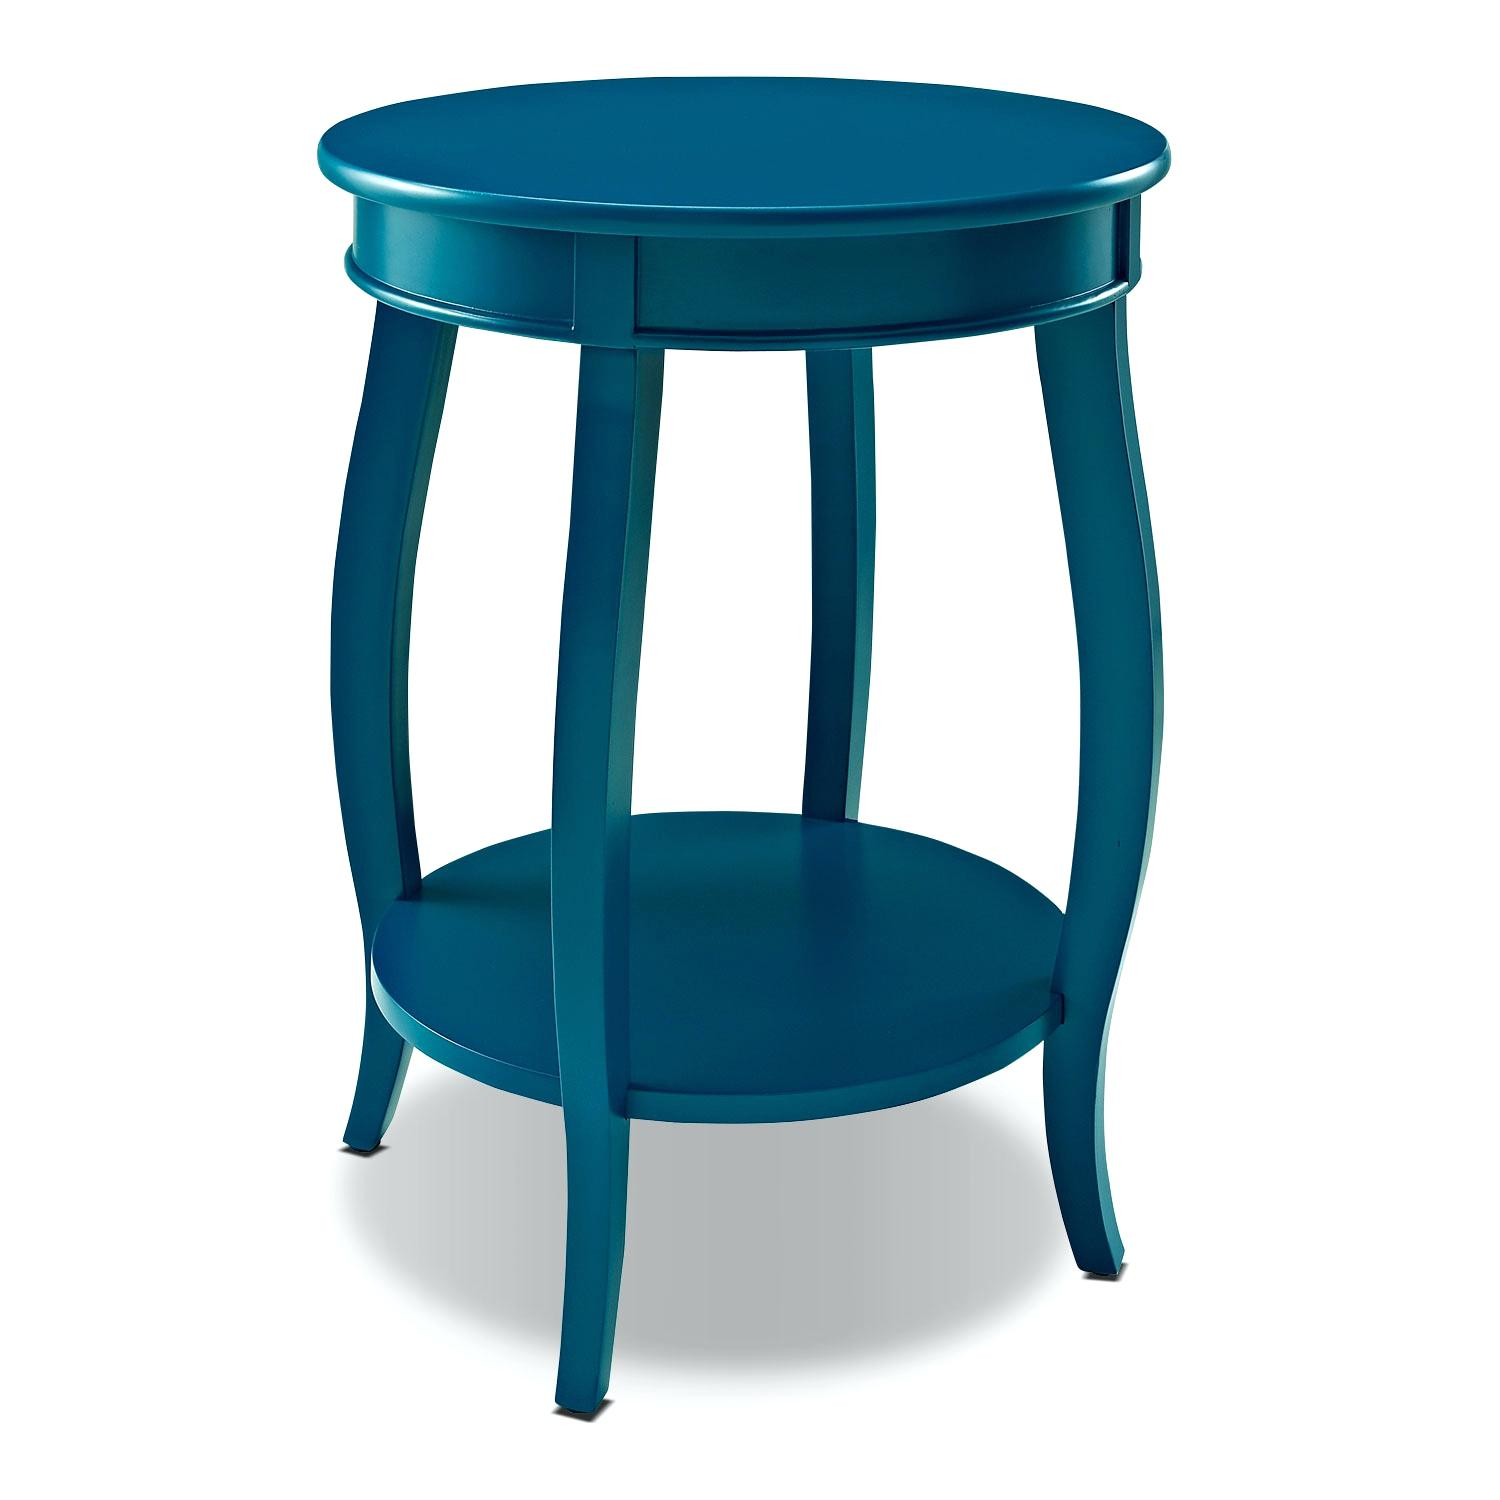 navy accent table target coffee teal side tables aster blue antique and occasional furniture fretwork small butler west elm free shipping coupon code murphy desk grey geometric